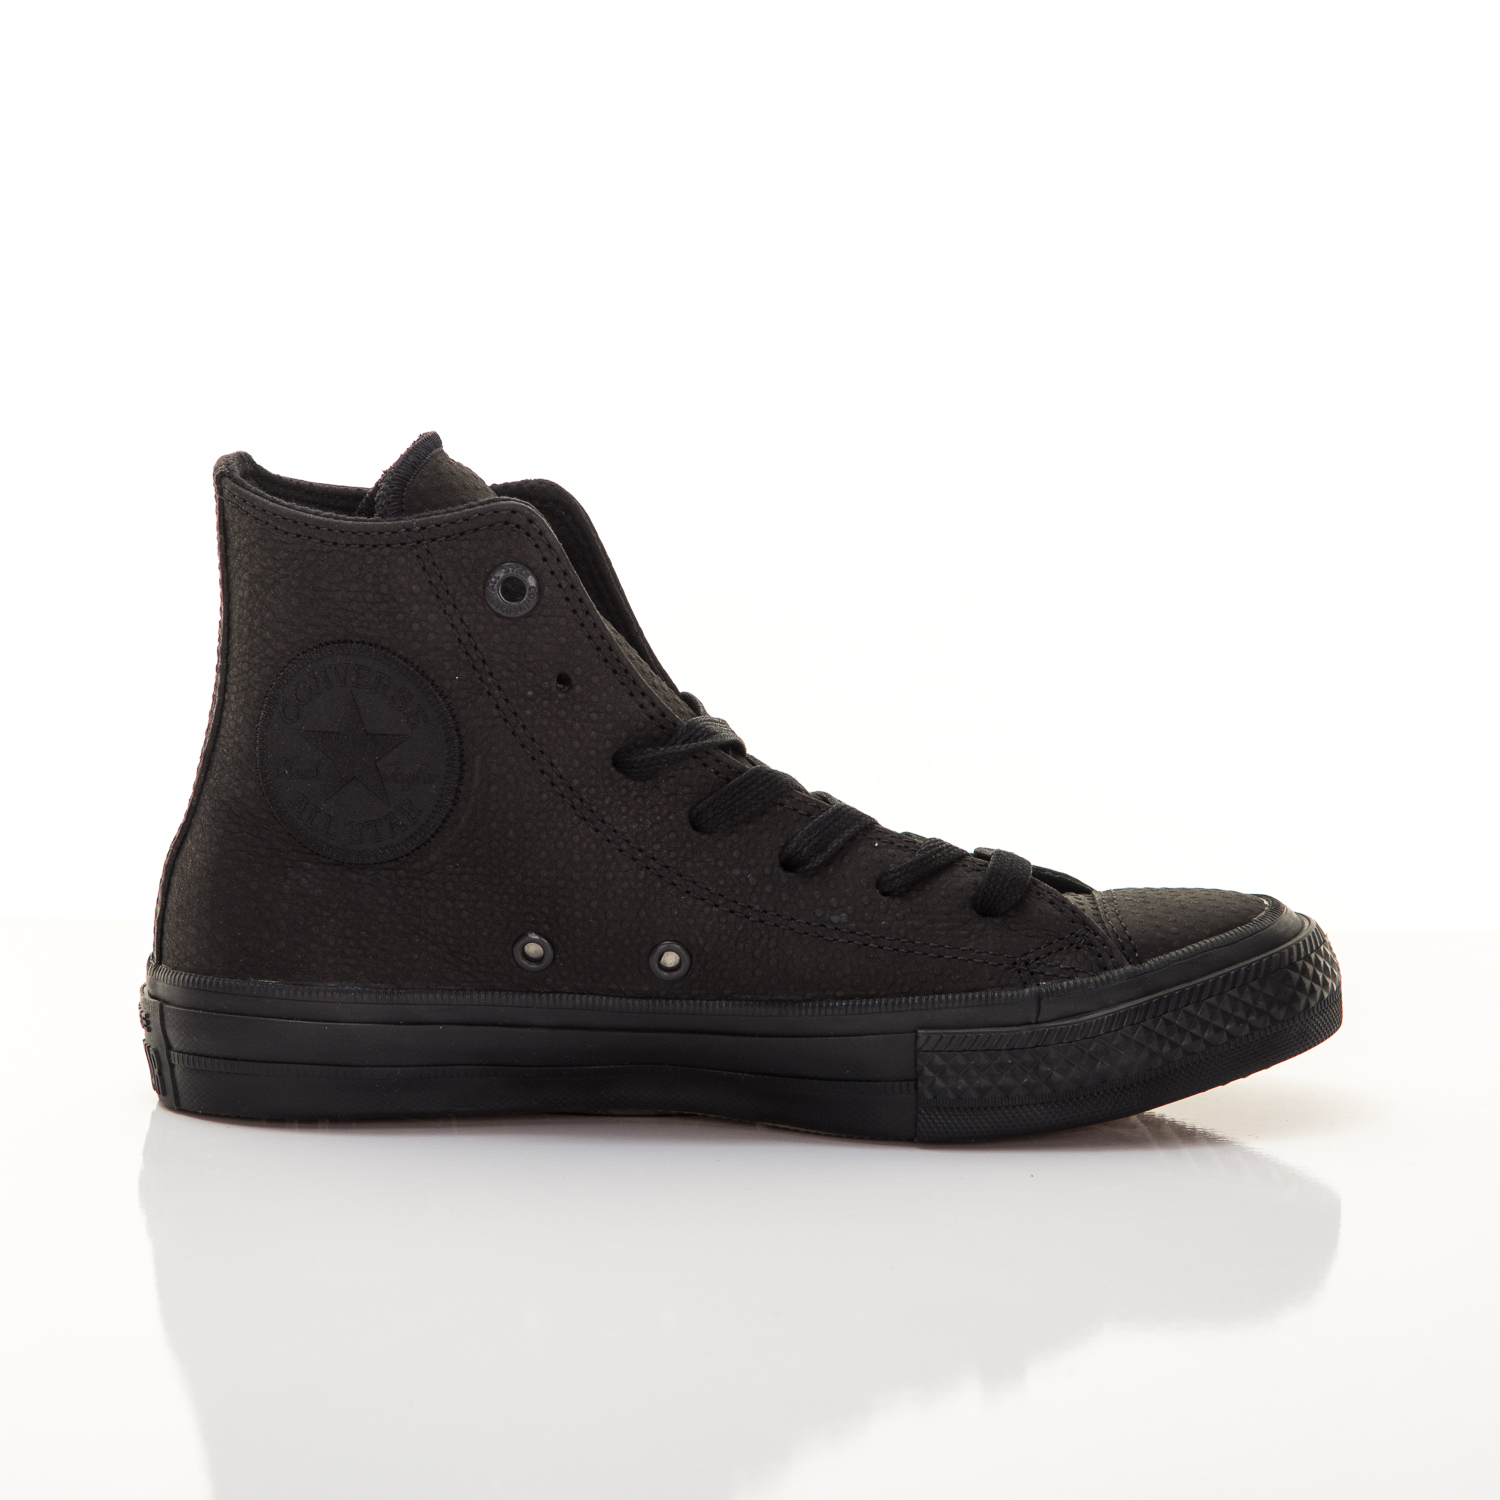 Unisex Tenisky Converse Chuck Taylor All Star II Lux Leather High Top Black 39.5